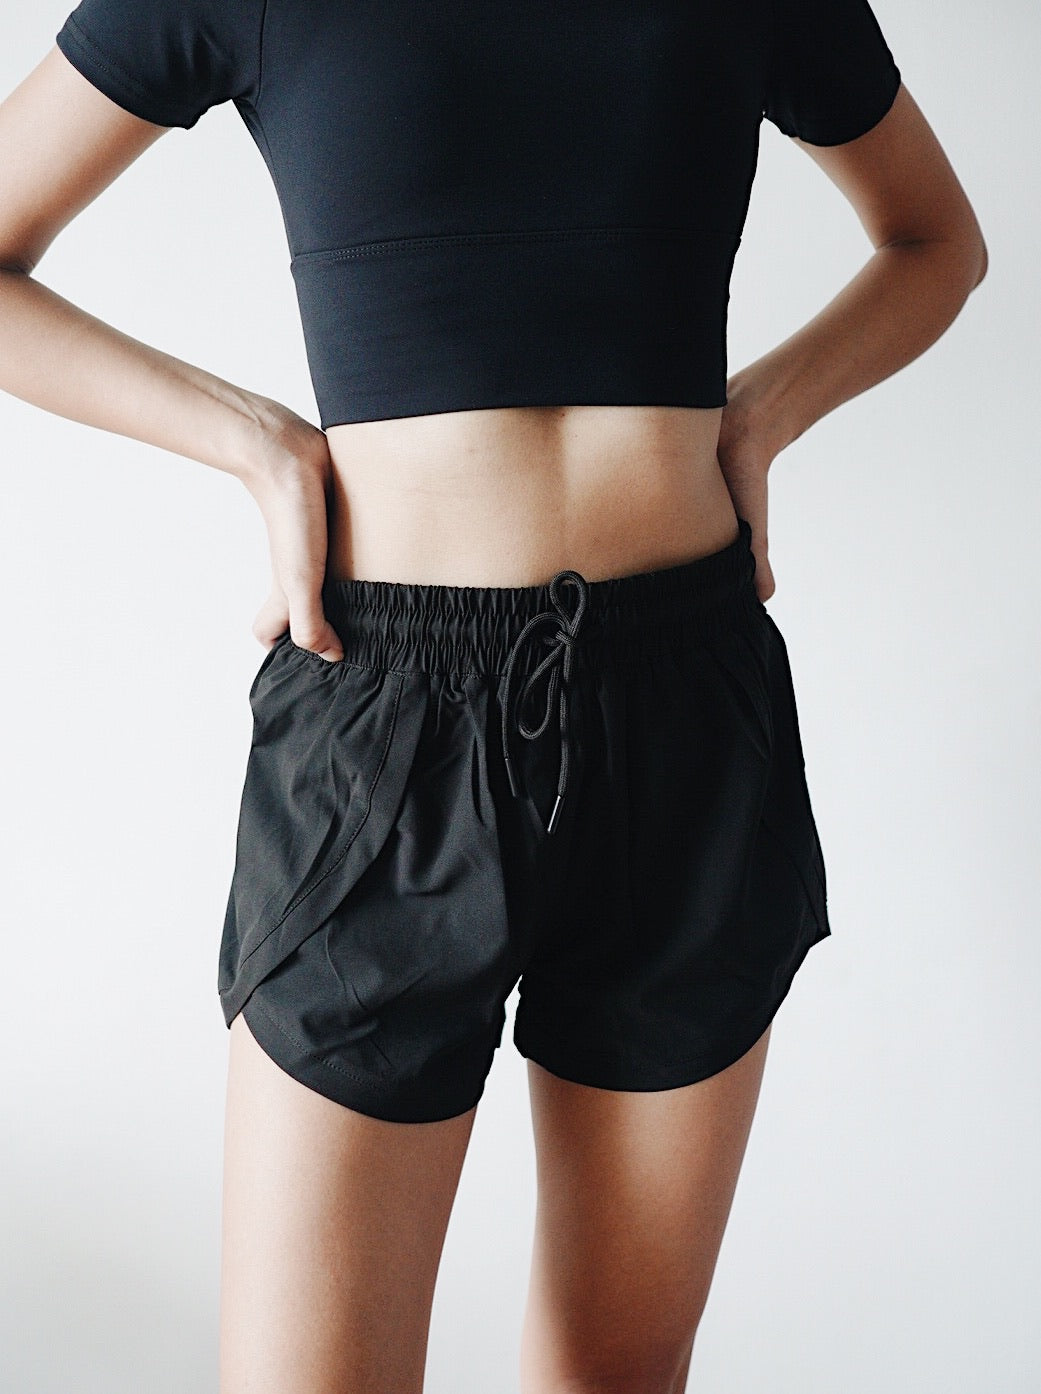 Chic Running Shorts - Black